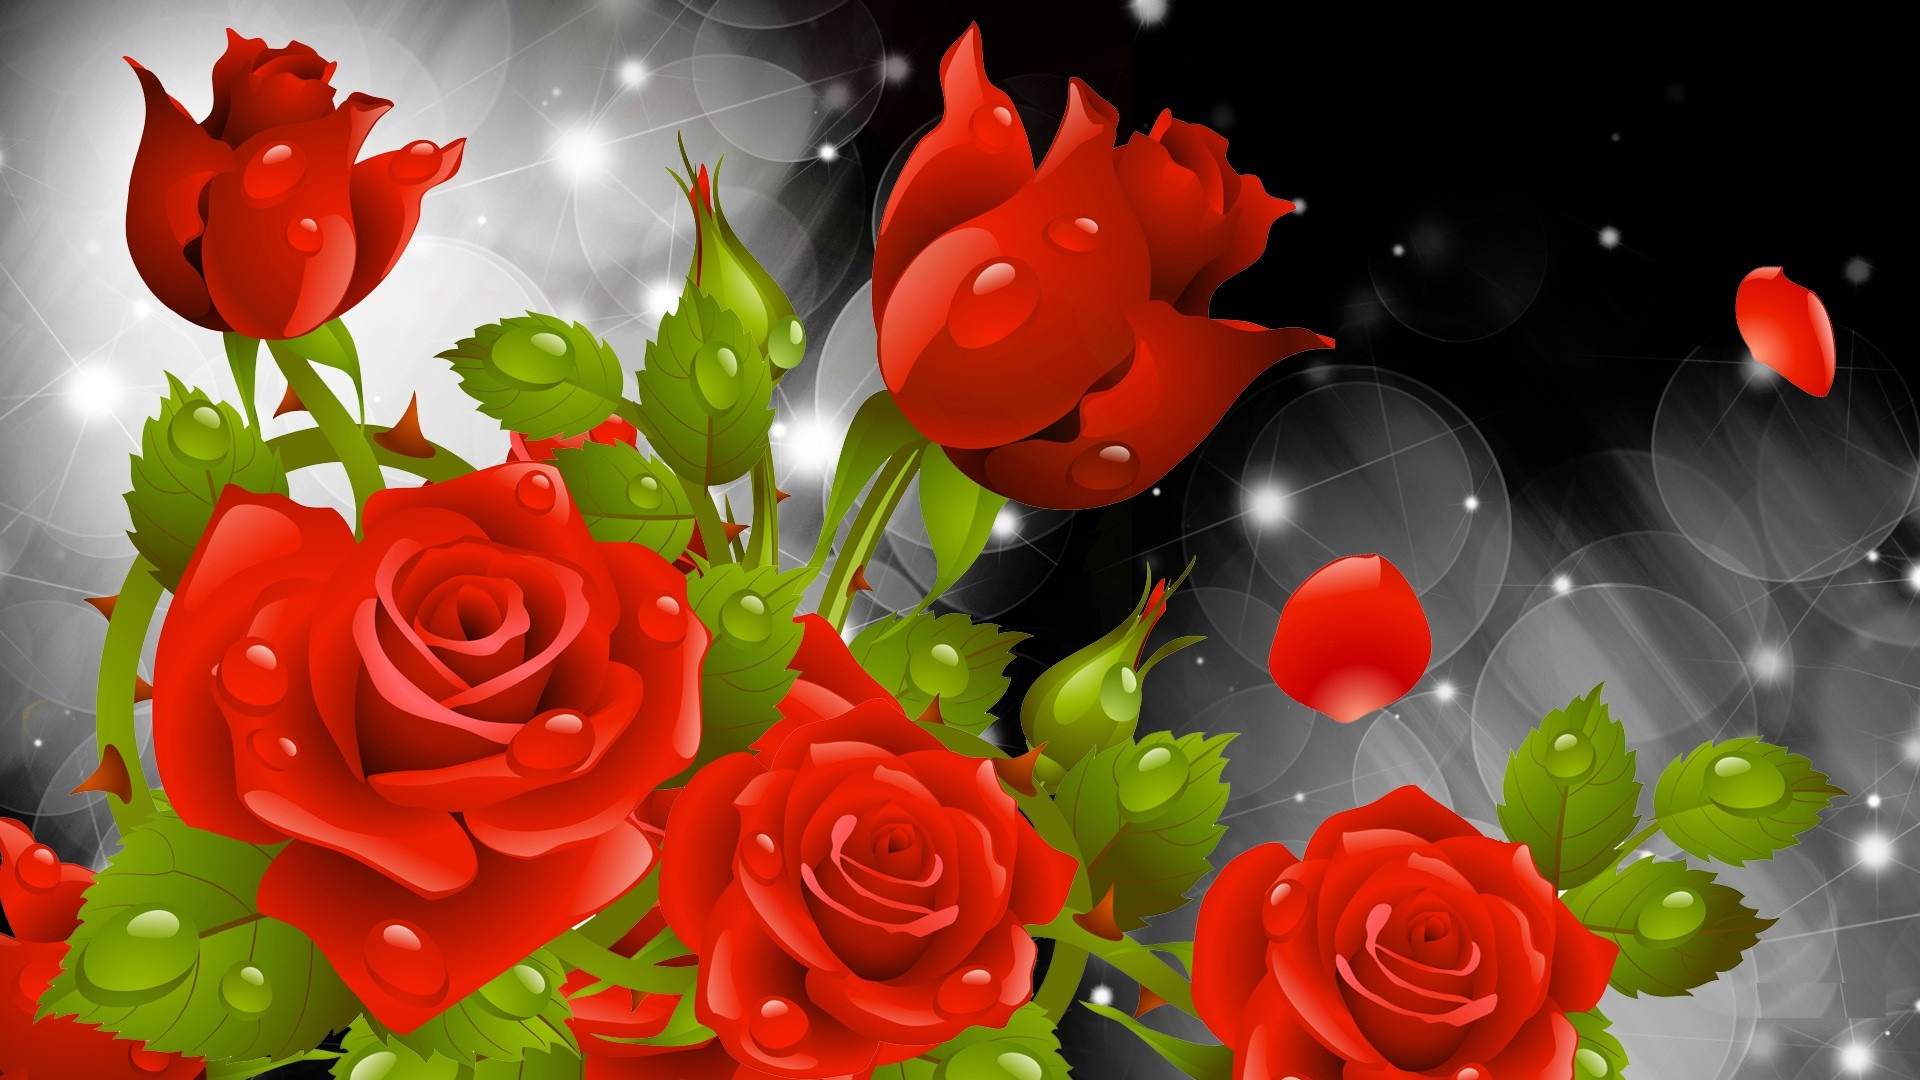 Red Rose Wallpapers High Quality Download Free